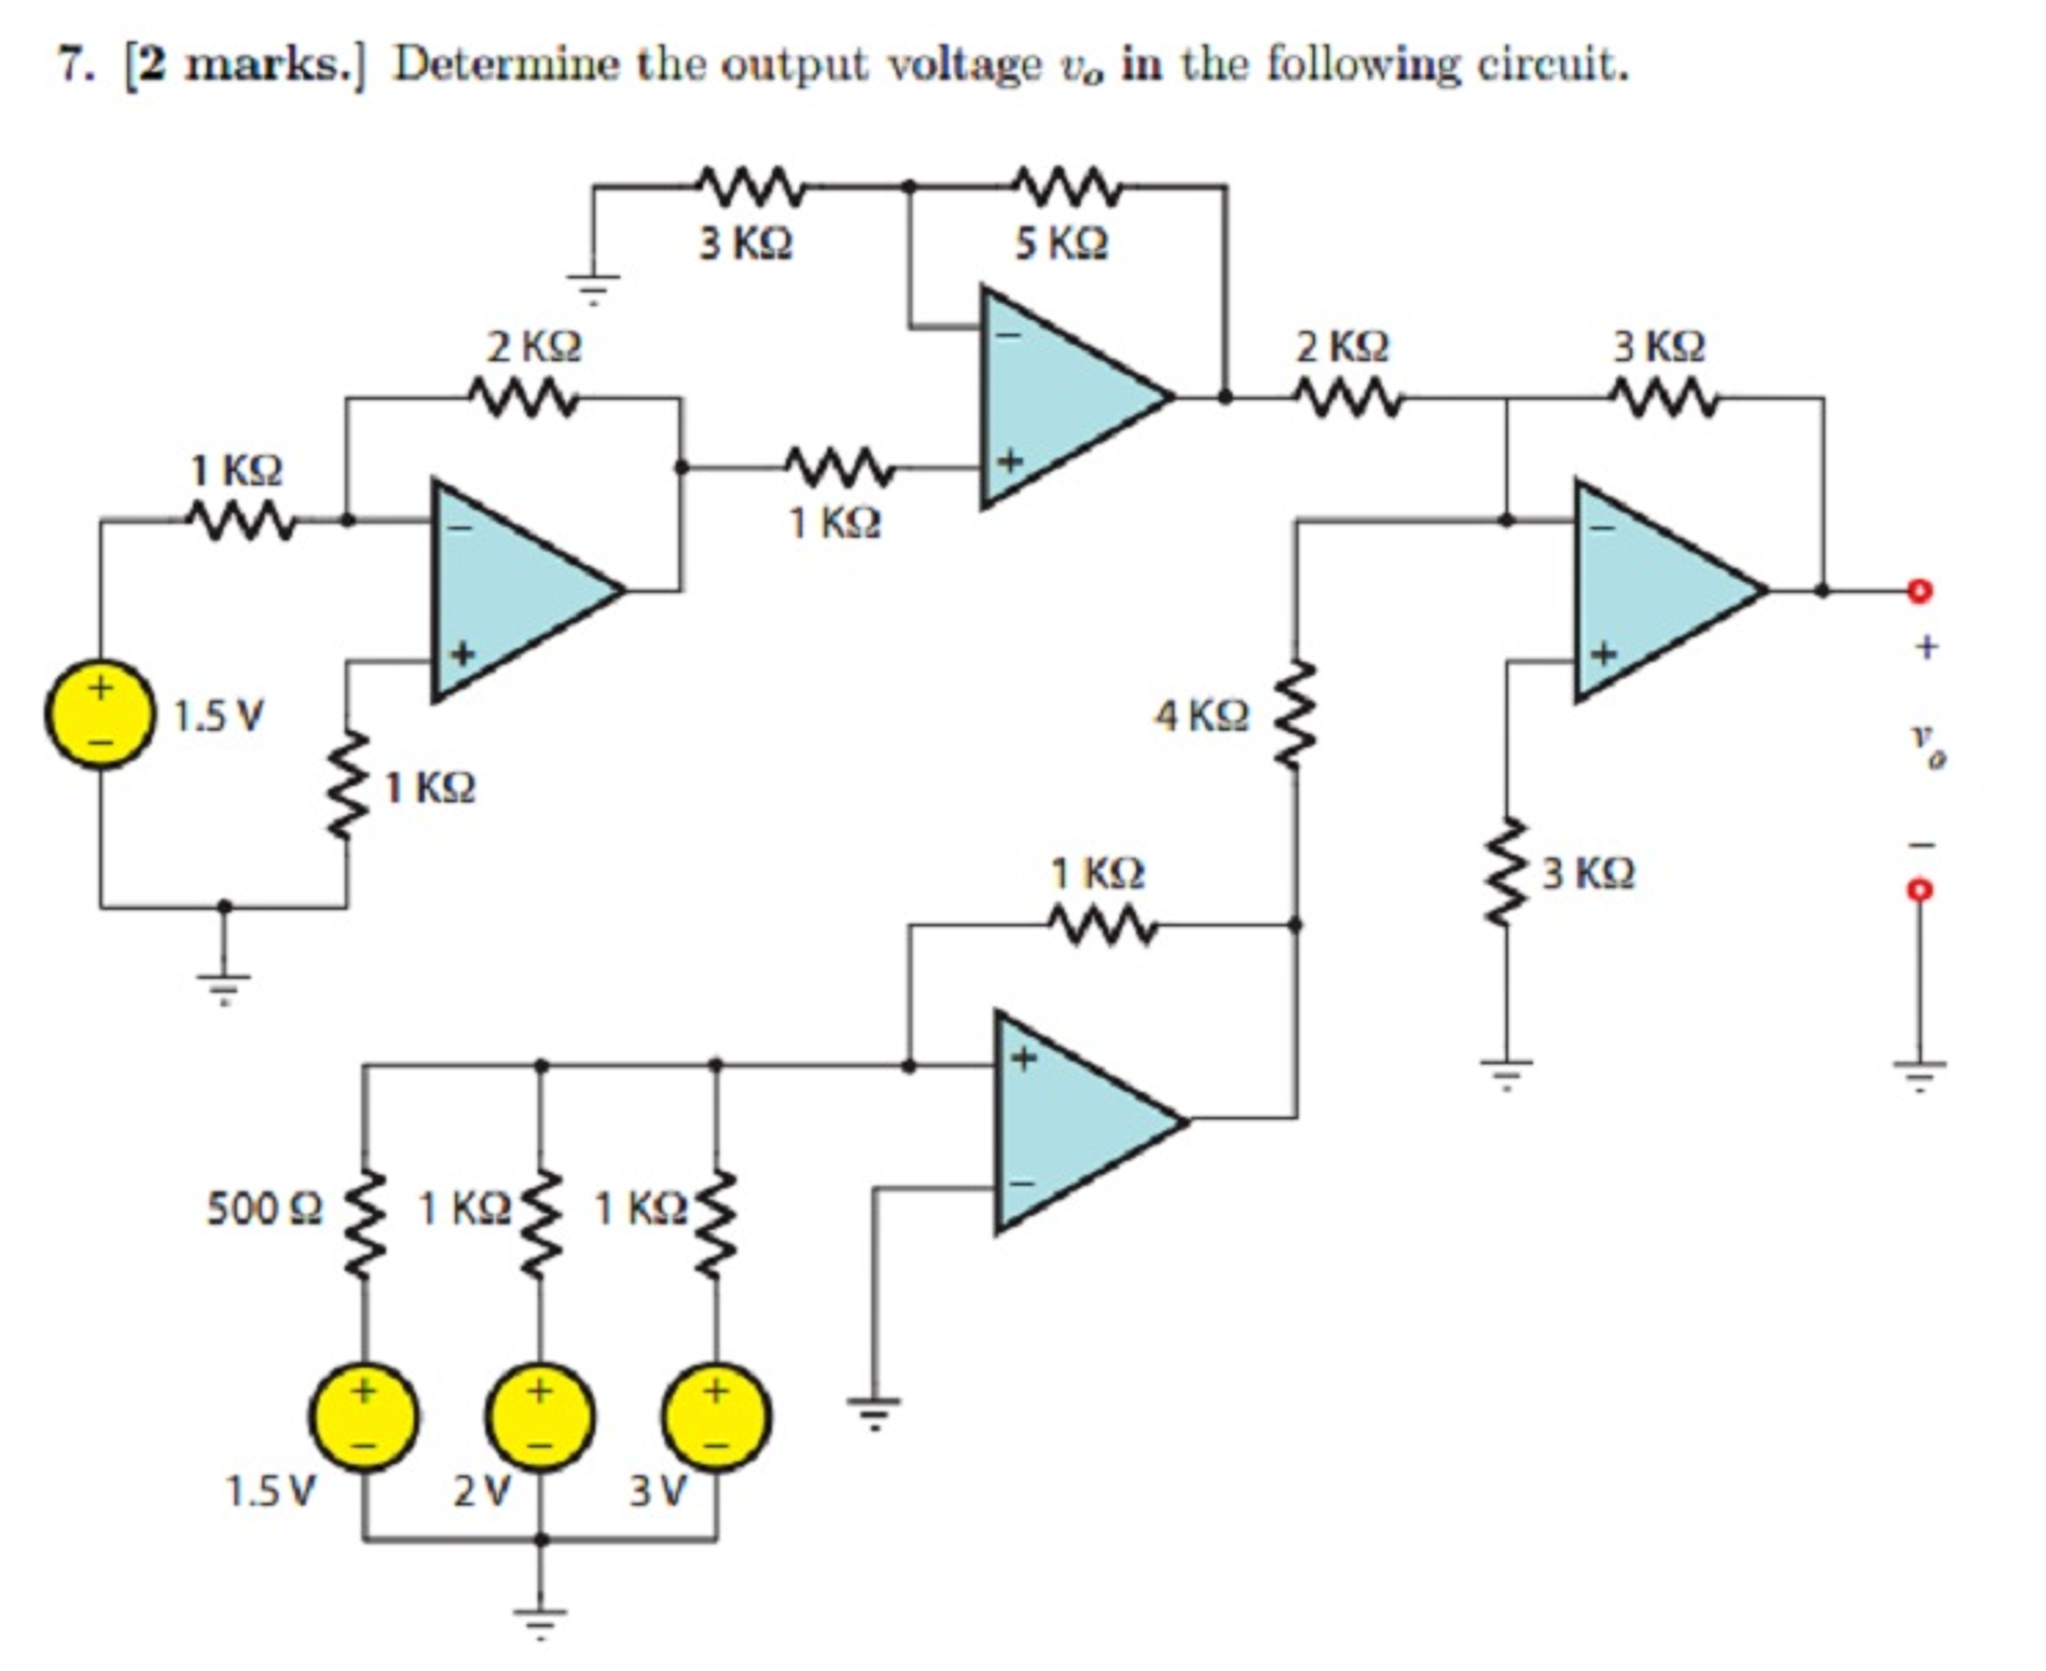 Determine the output voltage v in the following circuit 5